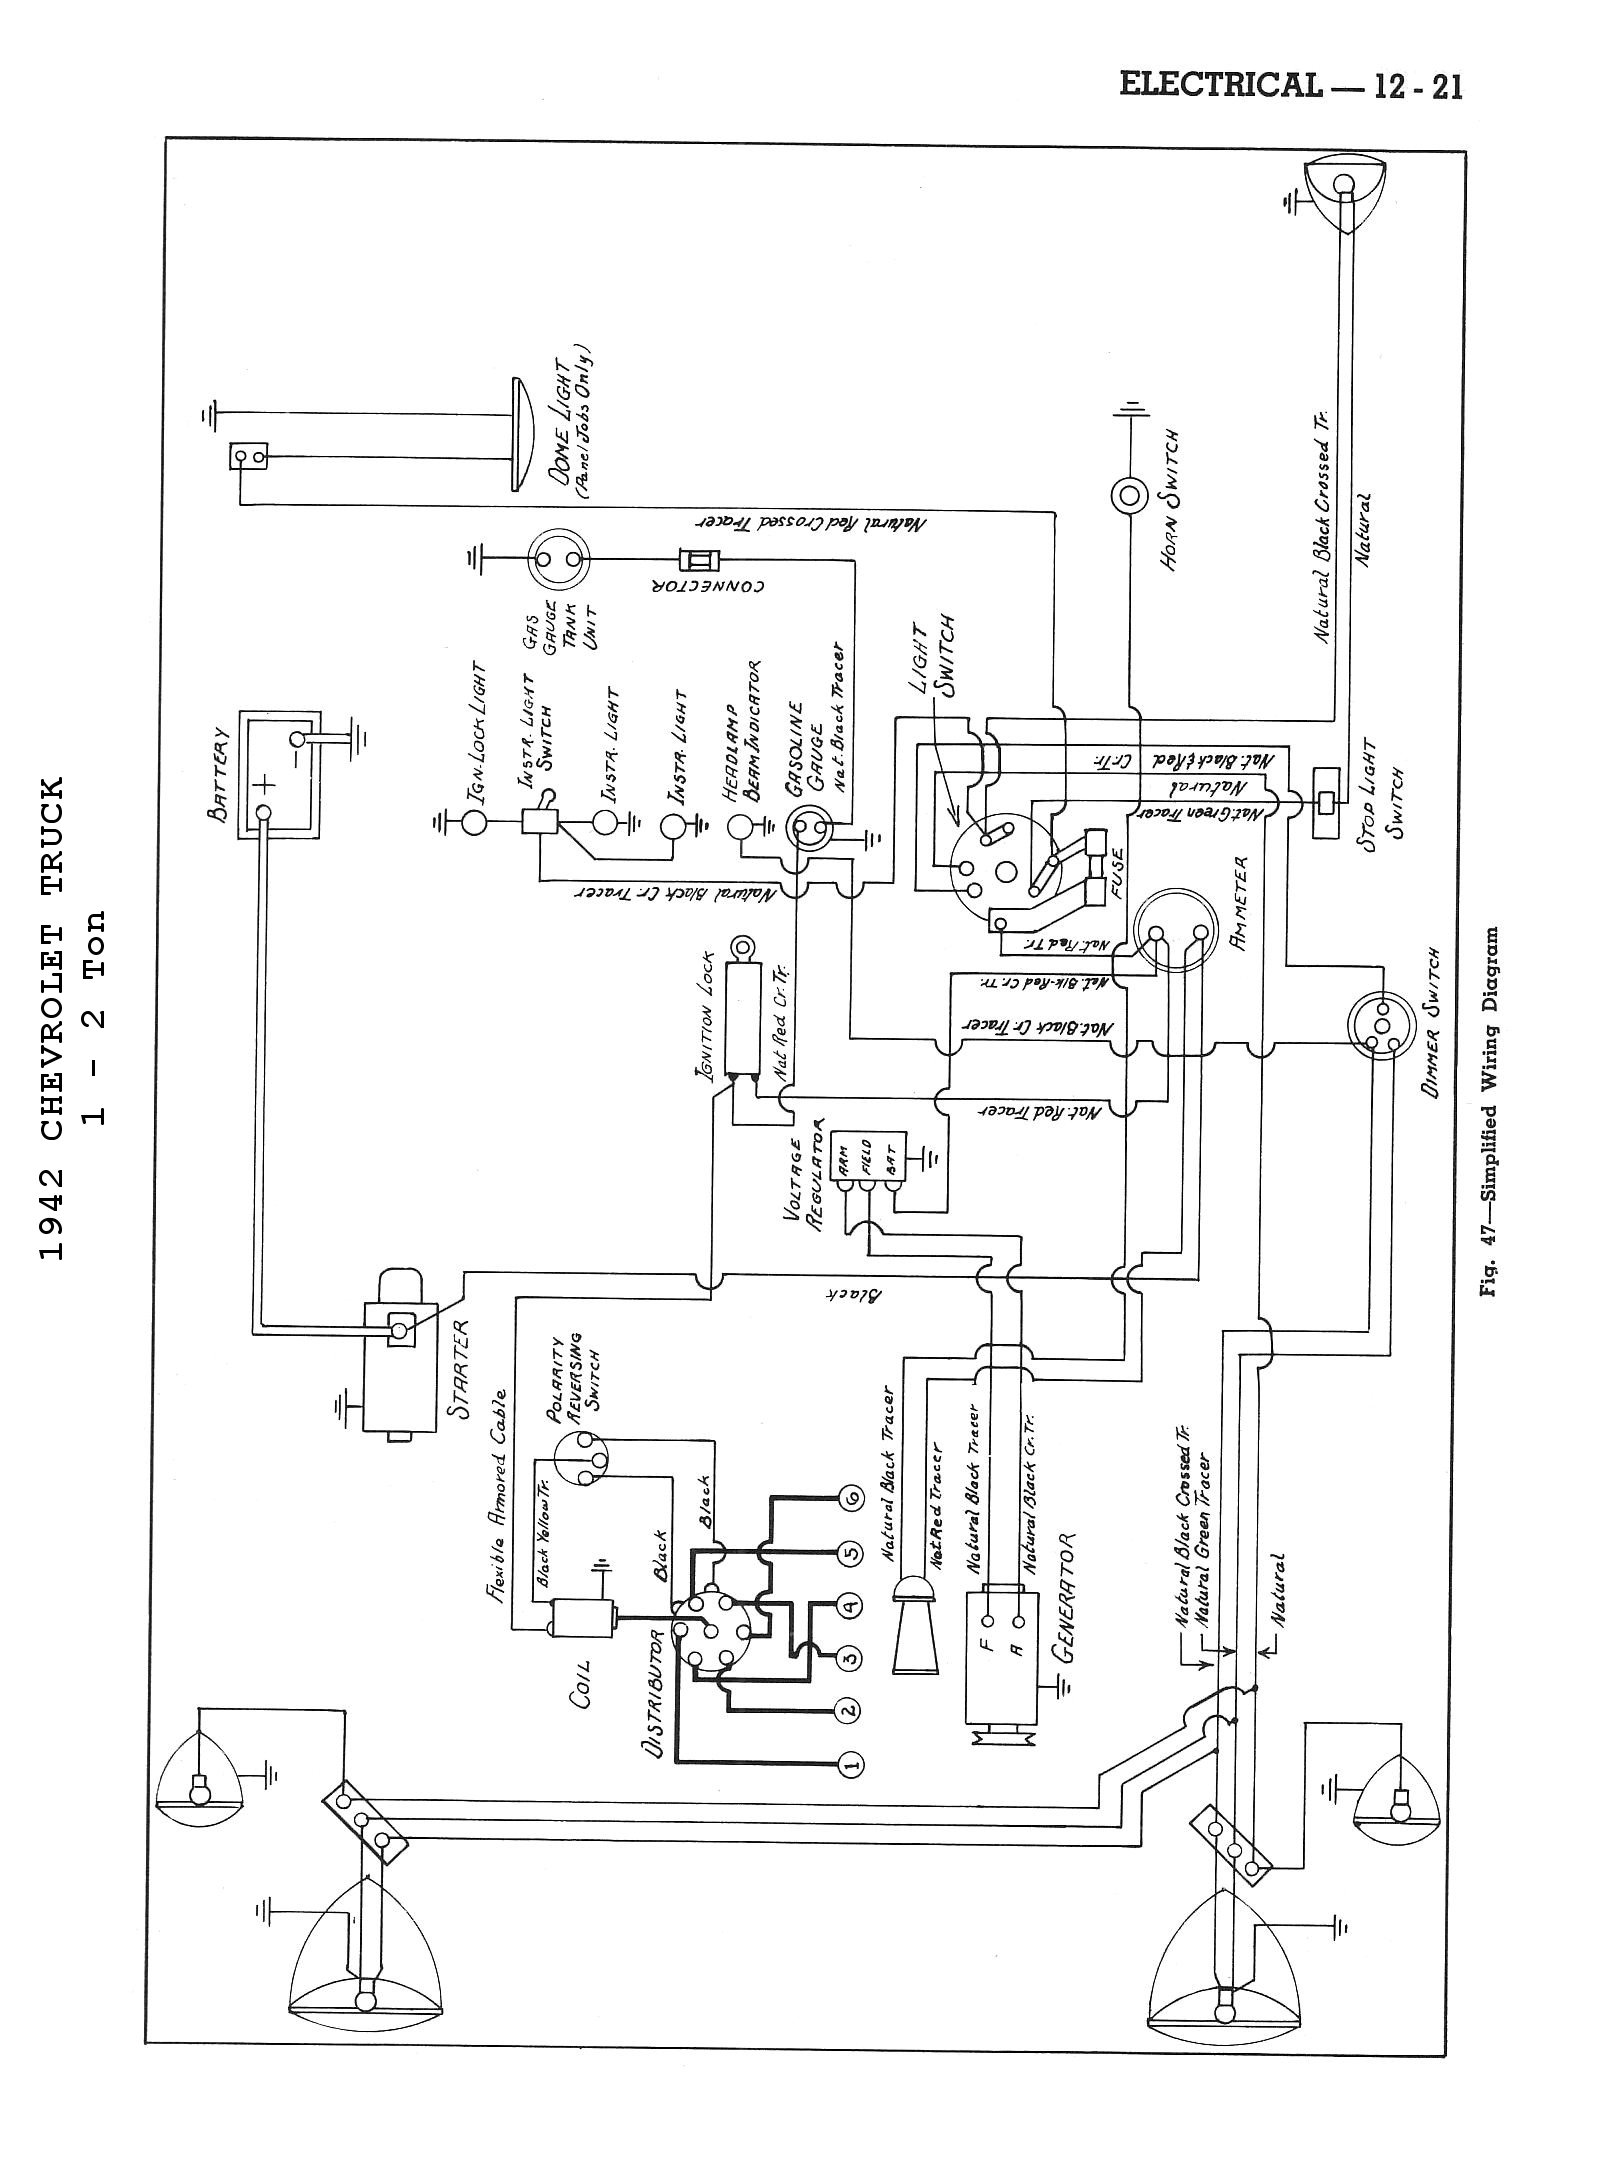 42cm4x2t1221 chevy wiring diagrams 57 chevy truck wiring harness at aneh.co